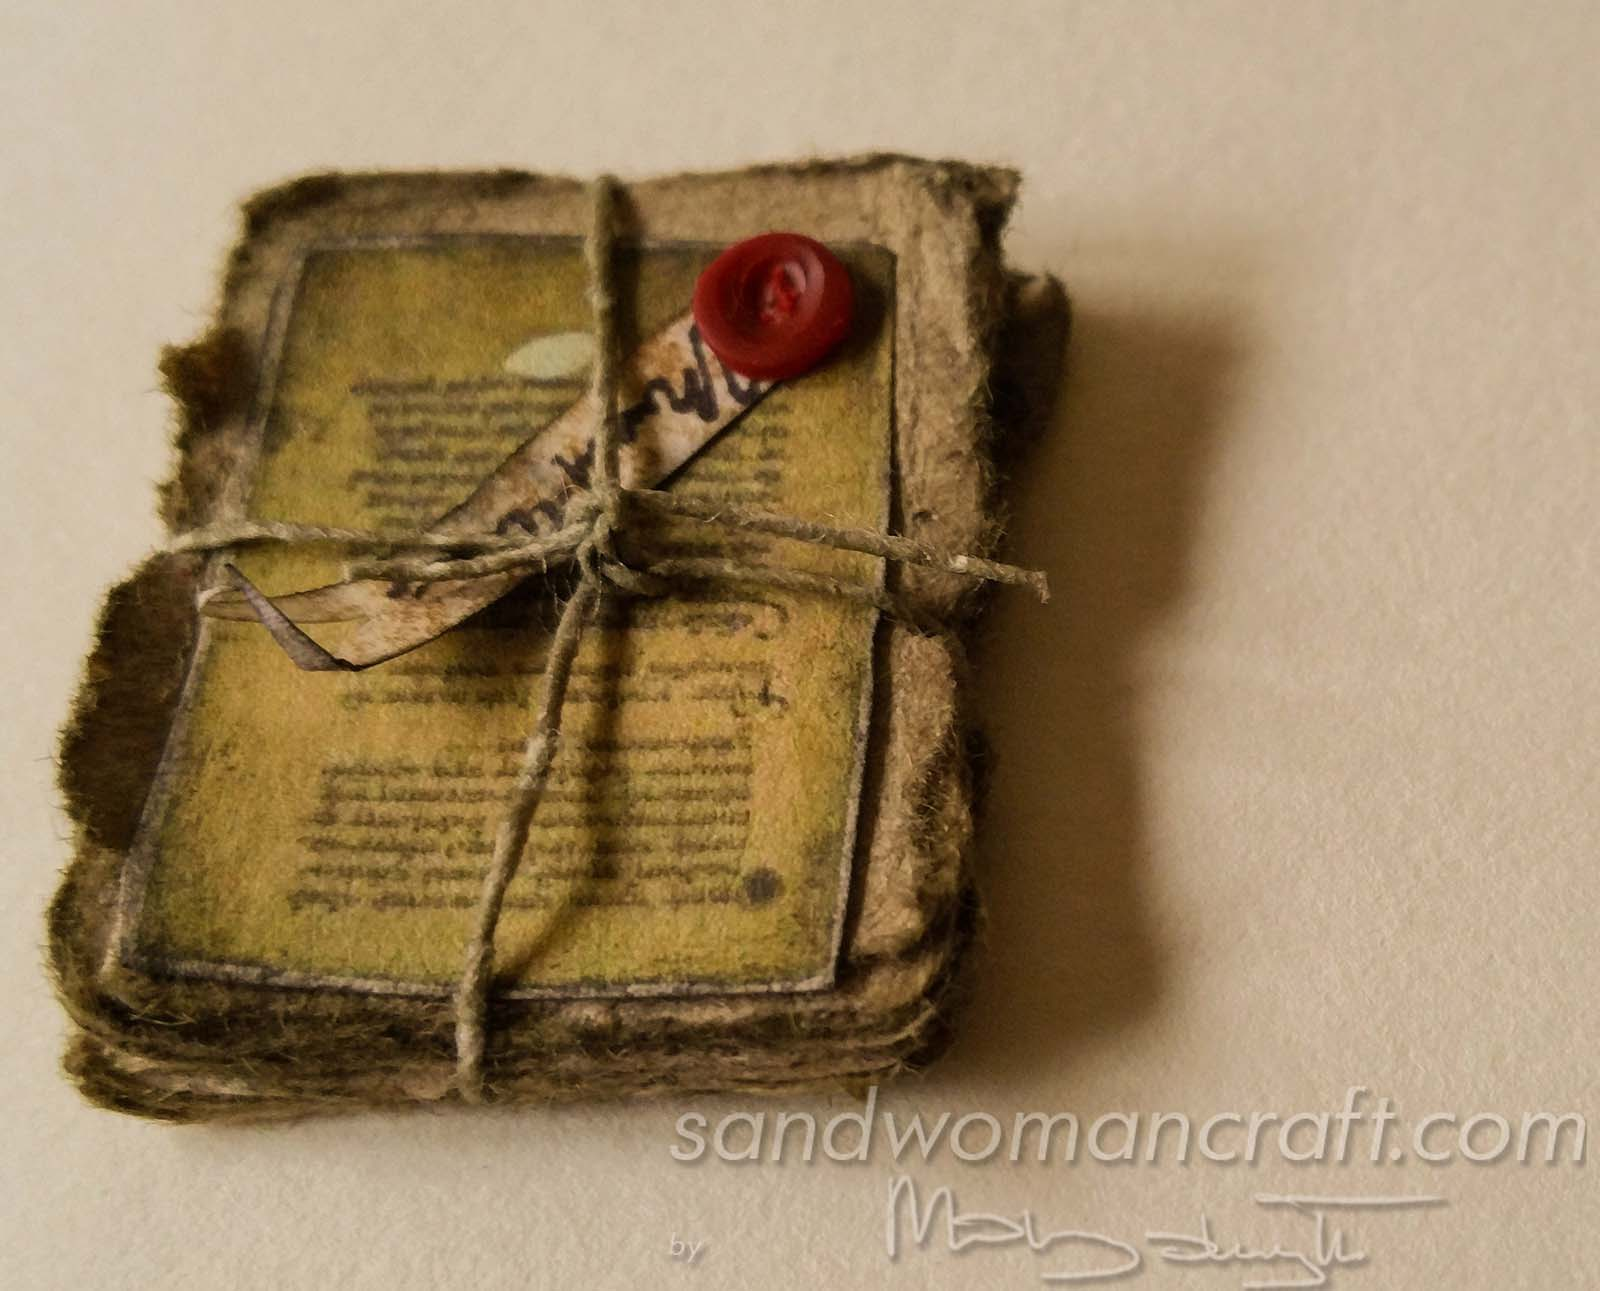 Halloween Miniaturen.Fantasy Archives Sandwoman Craft